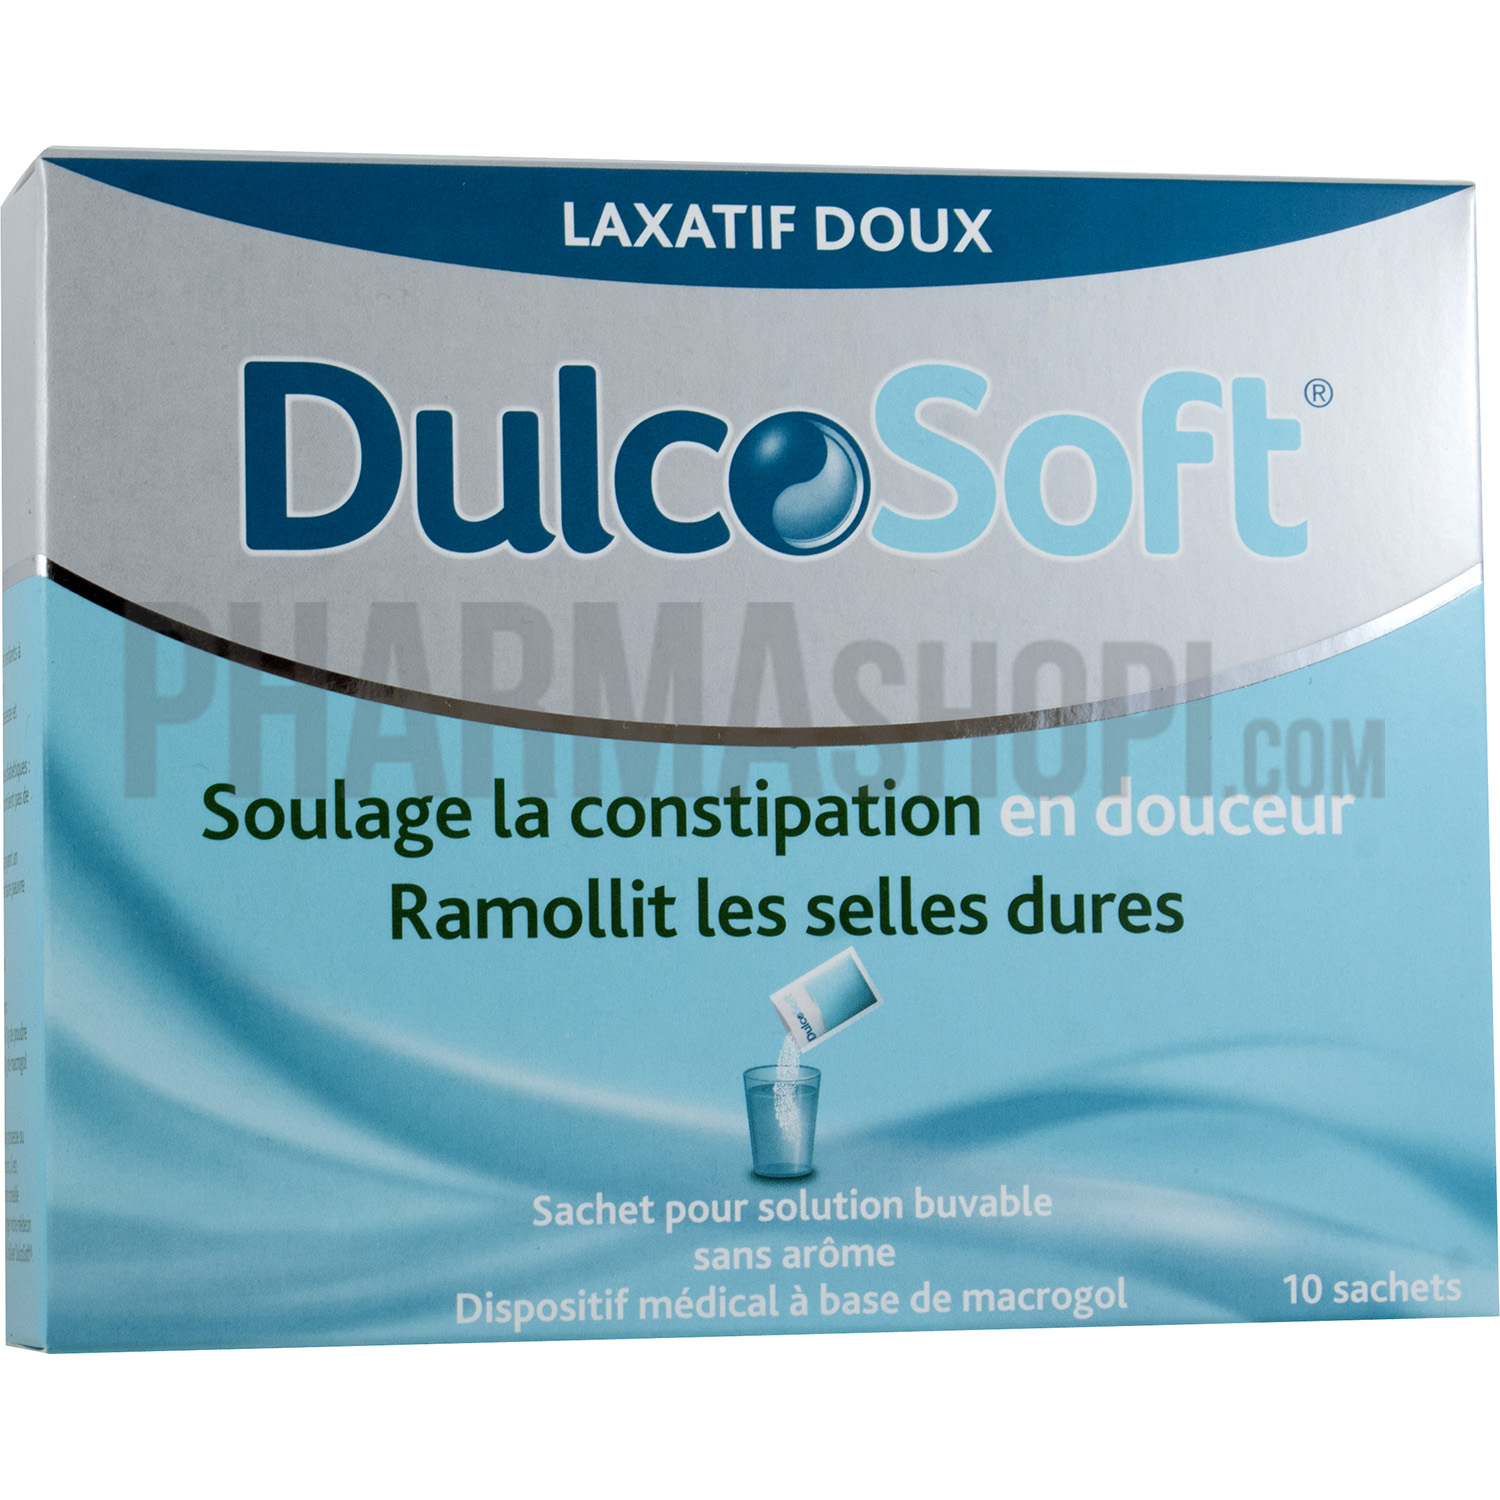 dulcosoft laxatif doux sachet pour solution buvable boite de 10 sachets. Black Bedroom Furniture Sets. Home Design Ideas